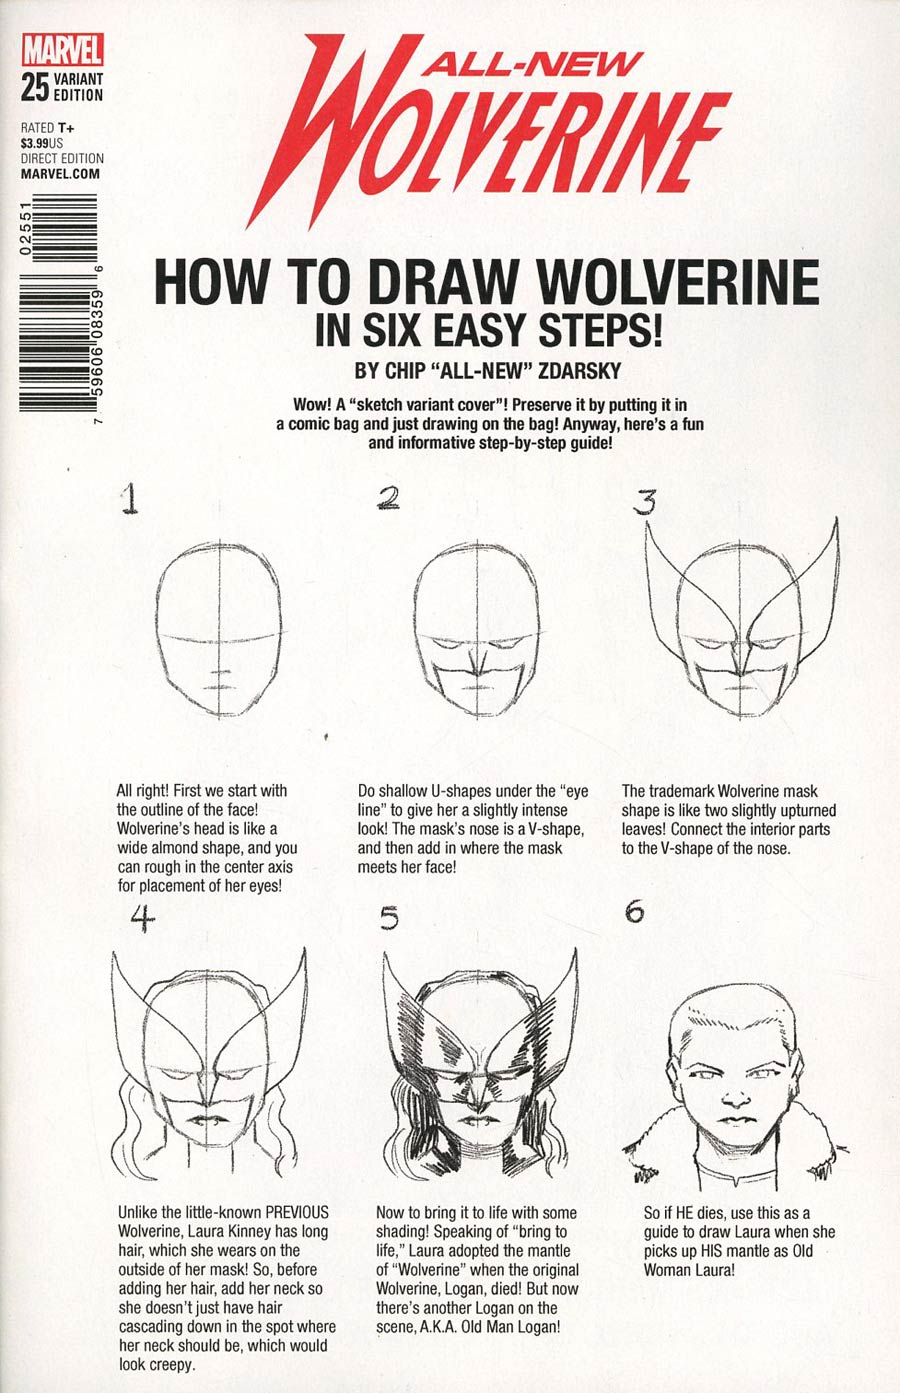 All-New Wolverine #25 Cover D Variant Chip Zdarsky How-To-Draw Cover (Marvel Legacy Tie-In)